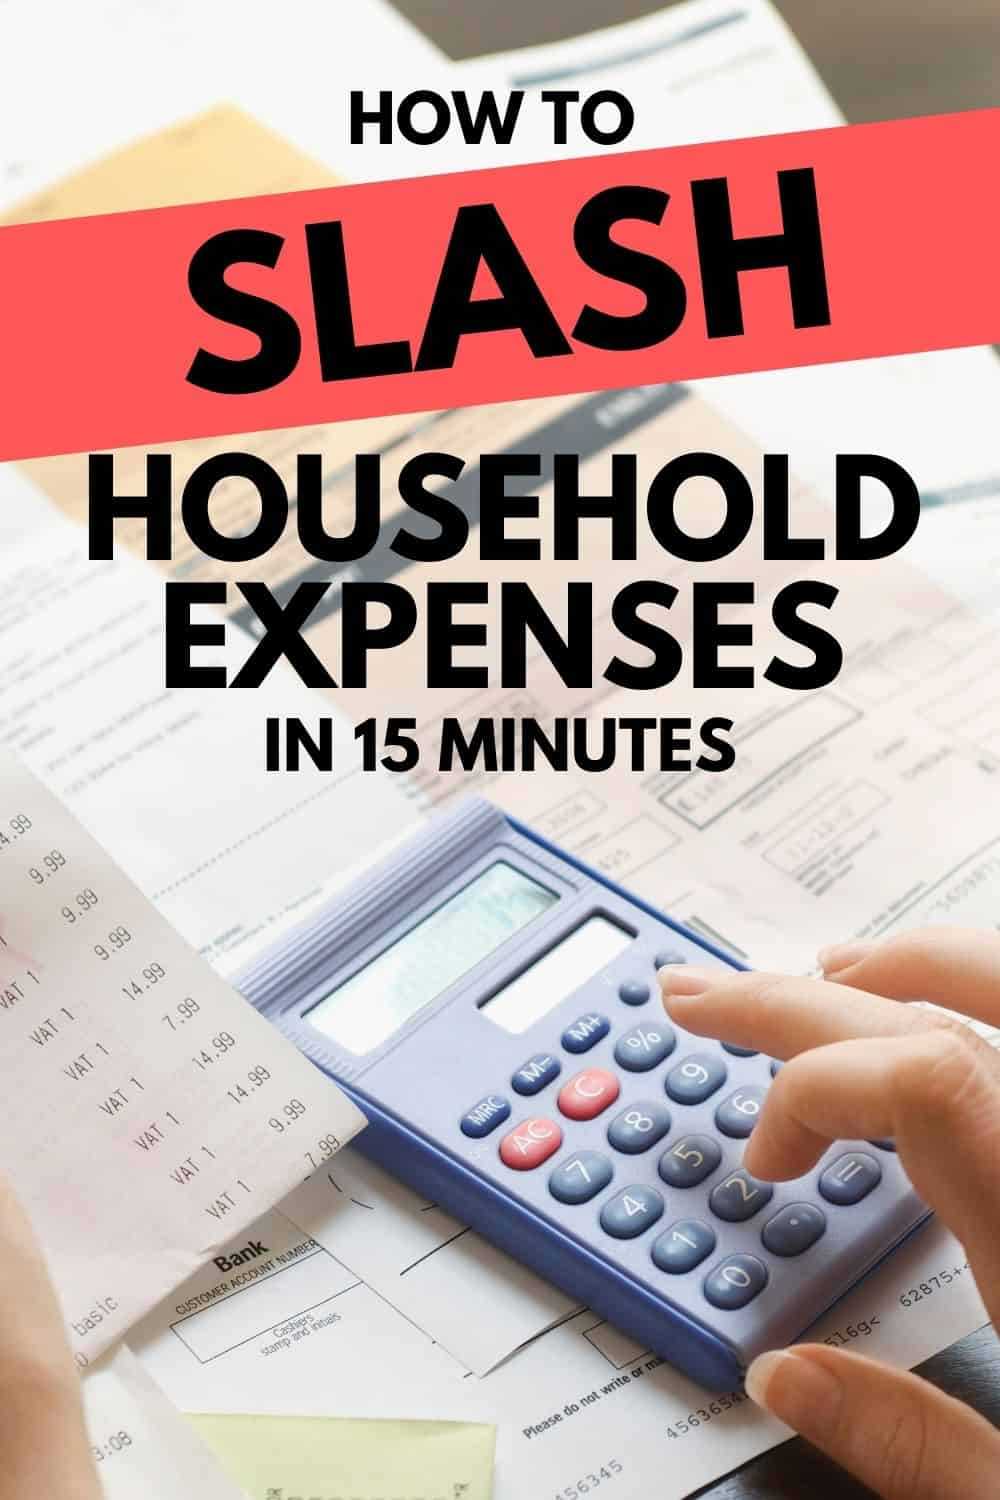 Look at these tips on how to slash household expenses in just 15 minutes, so you can free up some cash and find some relief from living paycheck to paycheck.